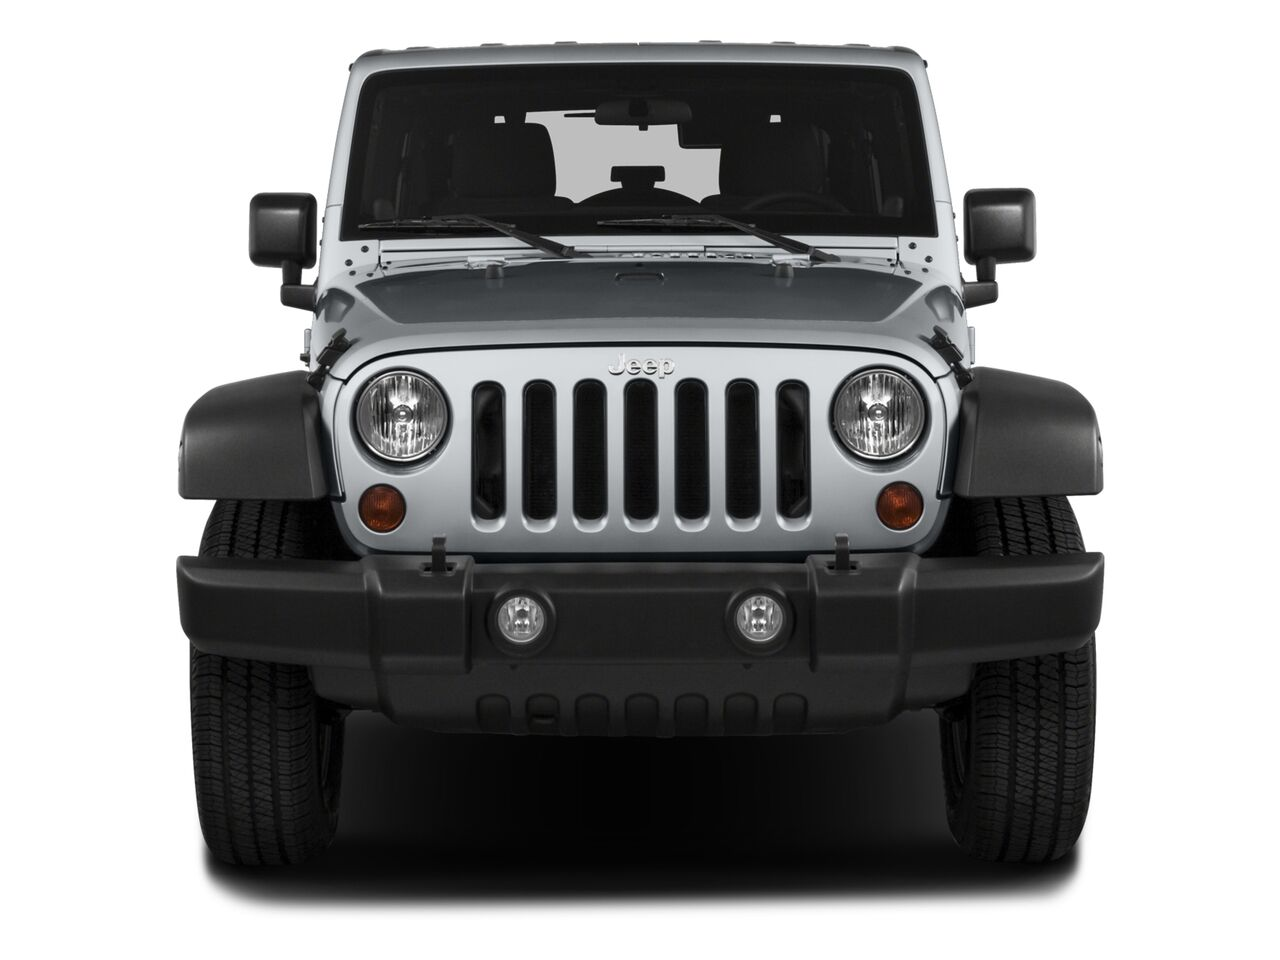 2016 Jeep Wrangler Unlimited Black Bear Terre Haute IN